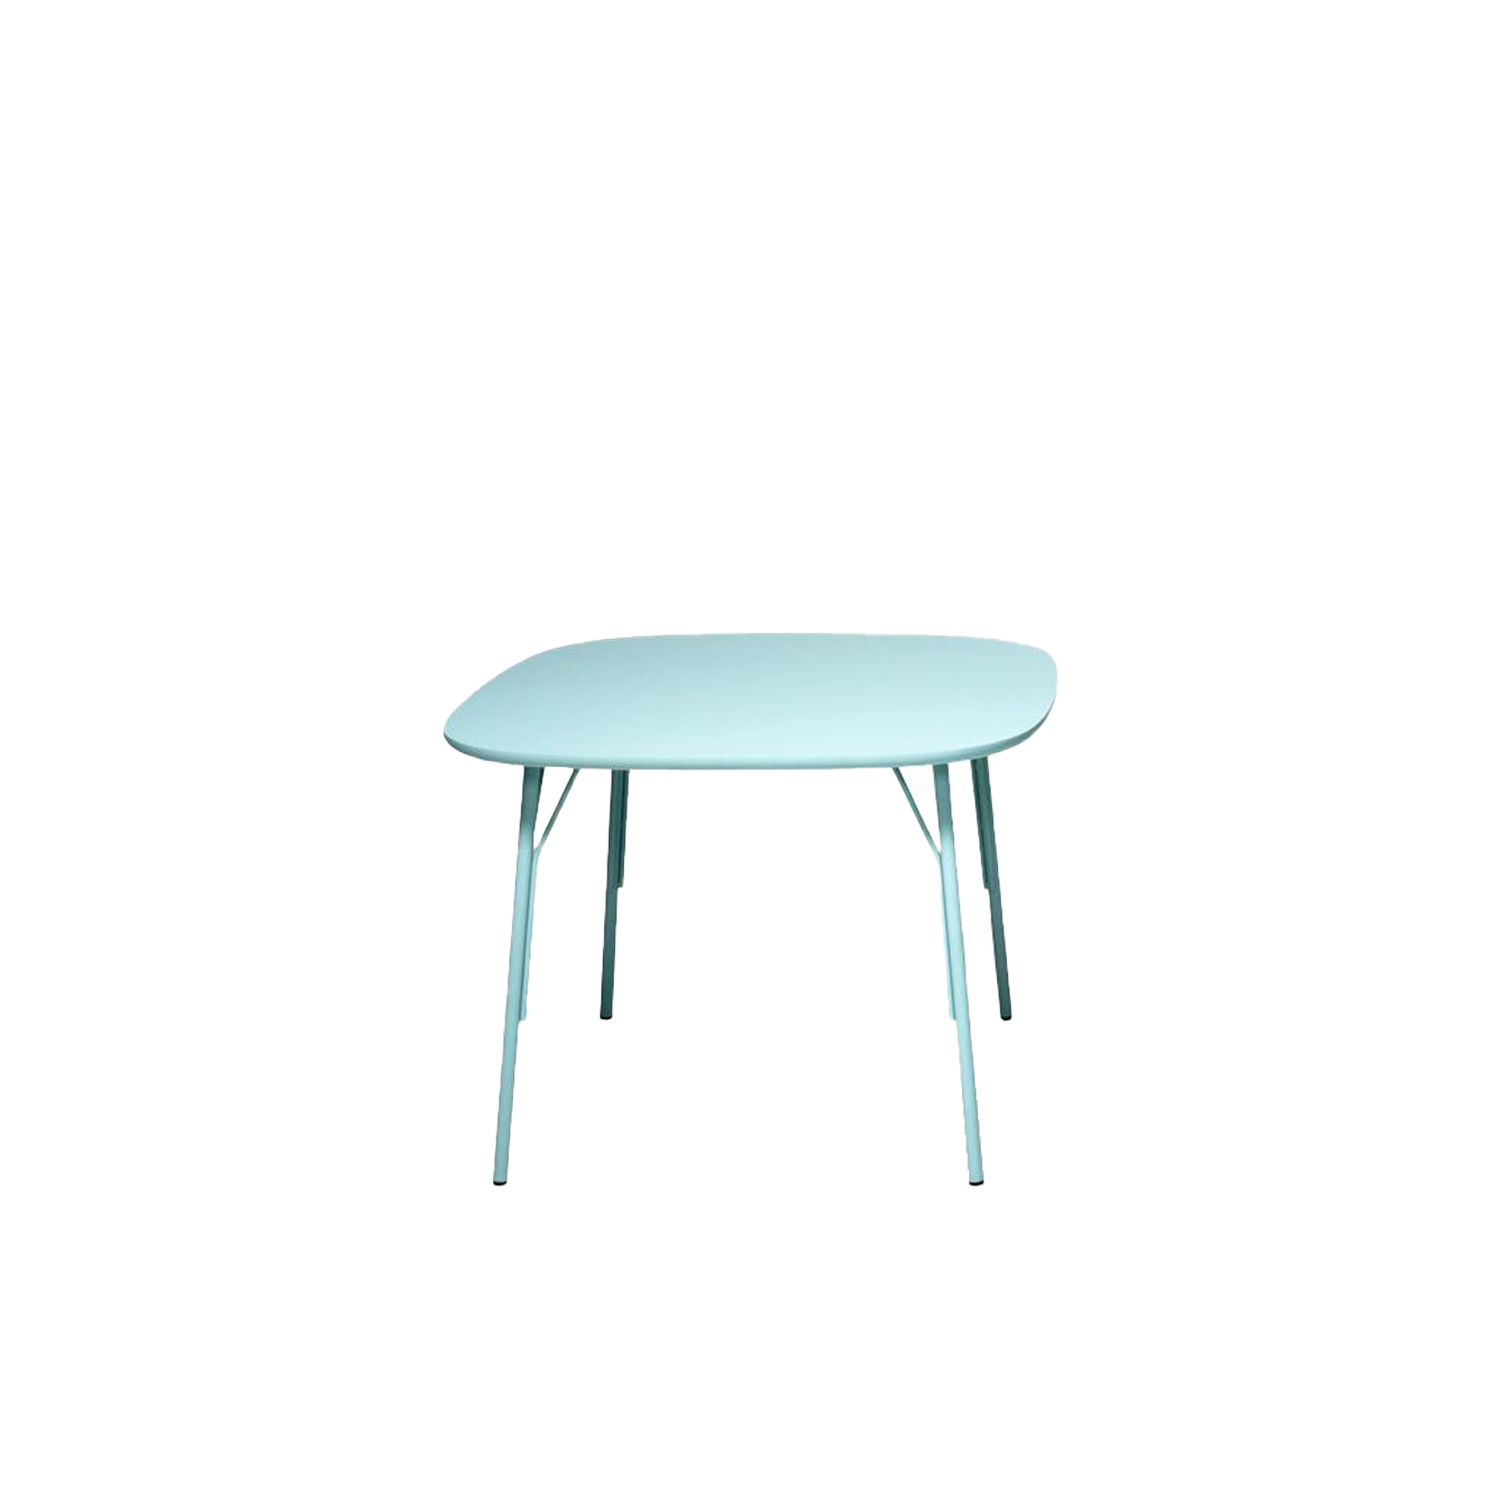 Kelly T Square Table  - Kelly tables are a complete collection of proposals characterised by the same enjoyable formal language made of rounded and comfortable geometries. They are available in different types and dimensions in order to satisfy every need at home, in the office or for the contract market: square, rectangular, with central base or with four legs. The structure can be painted with different colours or chromed for more sophisticated environments. In different colours the top as well, which can have a particular finish that makes it velvety and soft to the touch. This table can have an embossed finish. Please enquire for more information and finishes. | Matter of Stuff